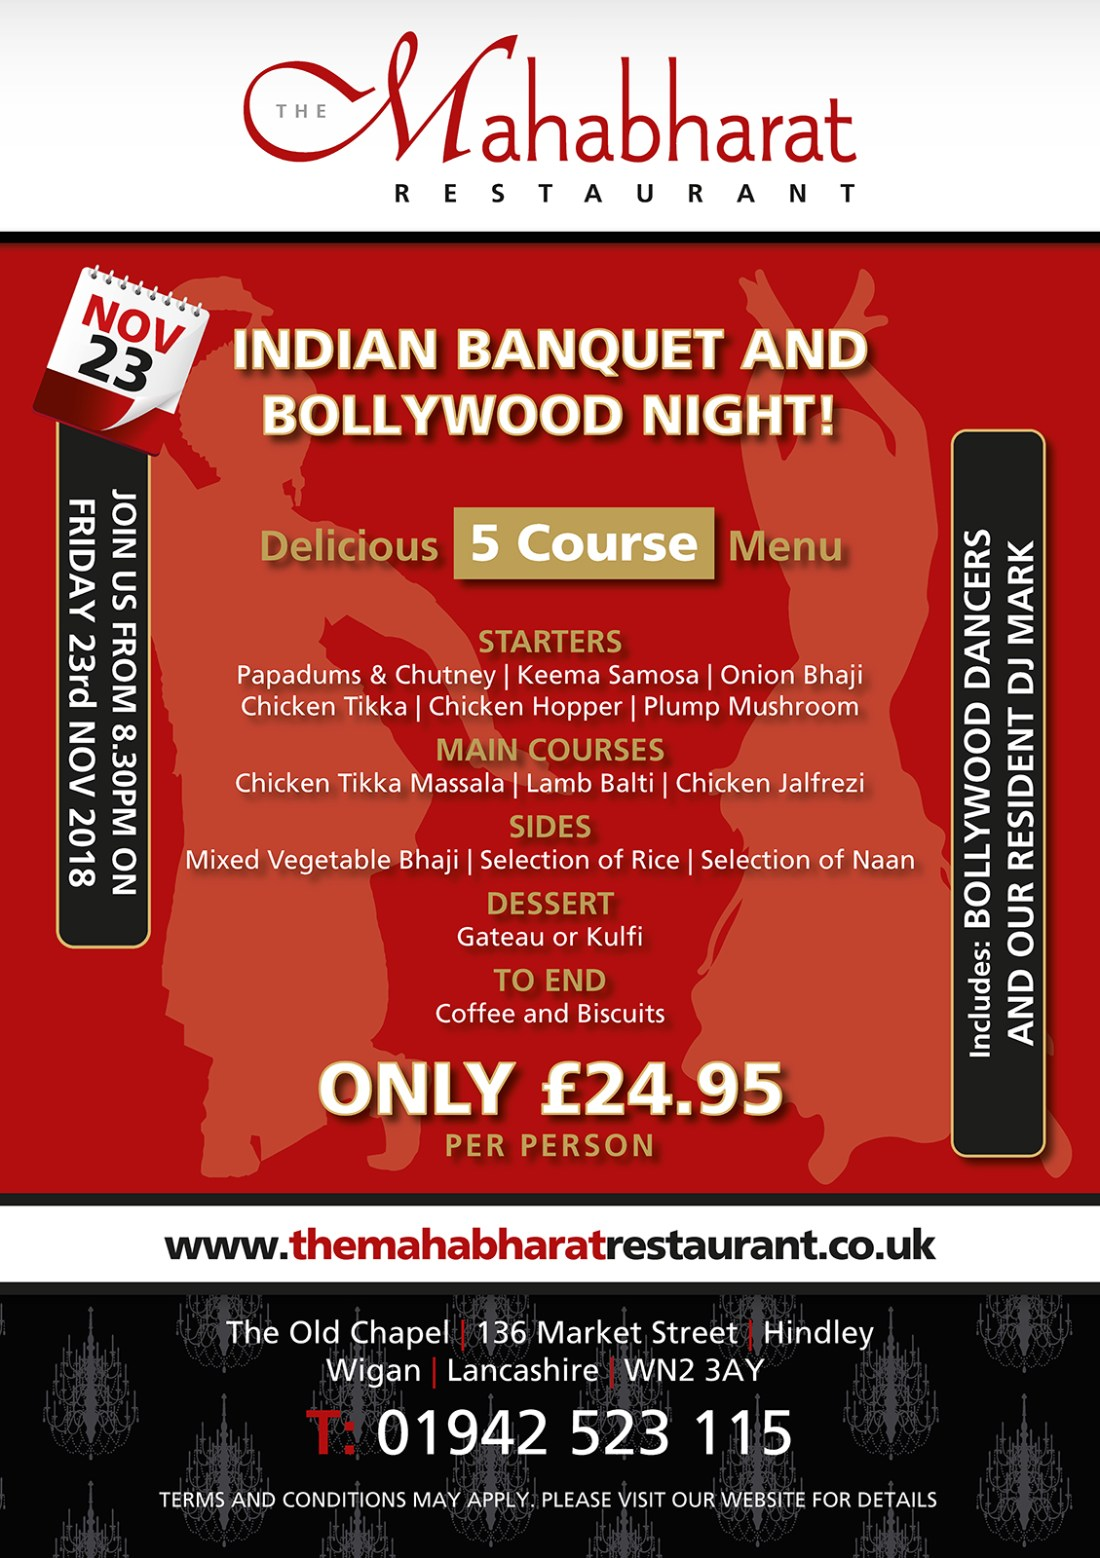 THE MAHABHARAT RESTAURANT